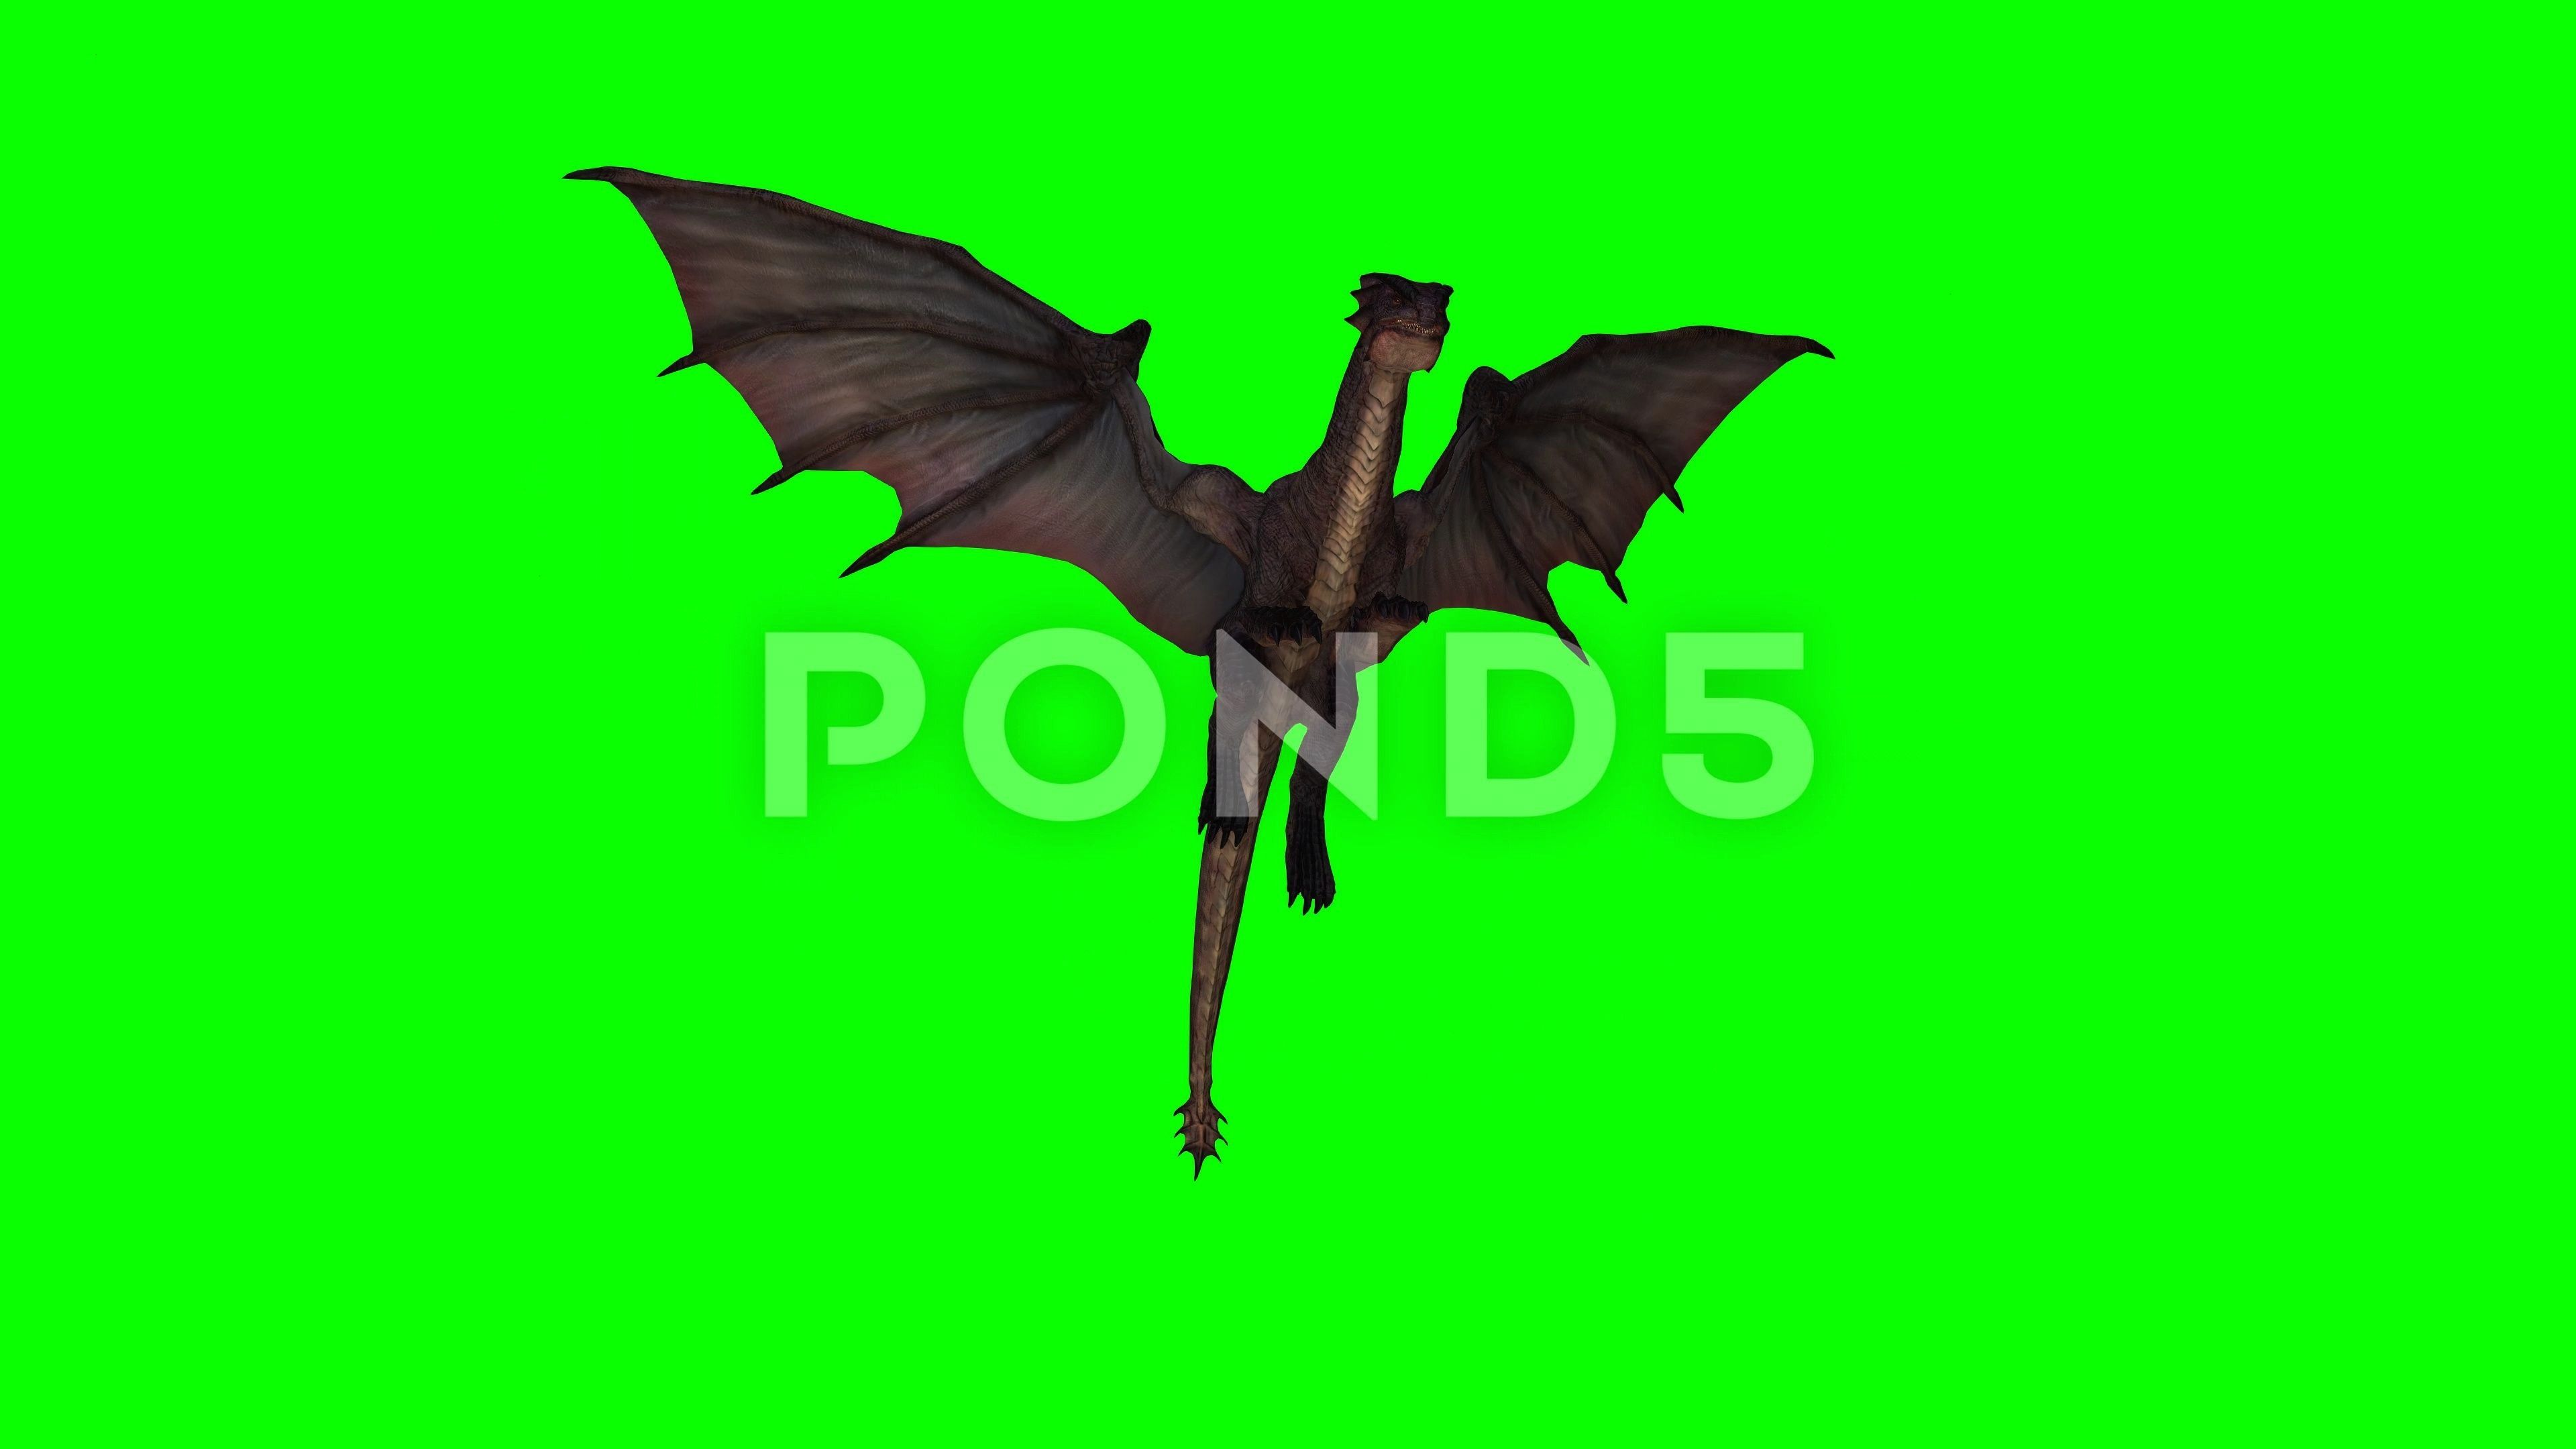 Flying Idle Animation In Green Screen Stock Footage IdleAnimation  Dragon Flying Idle Animation In Green Screen Stock Footage IdleAnimationDragonFlying Informations About...